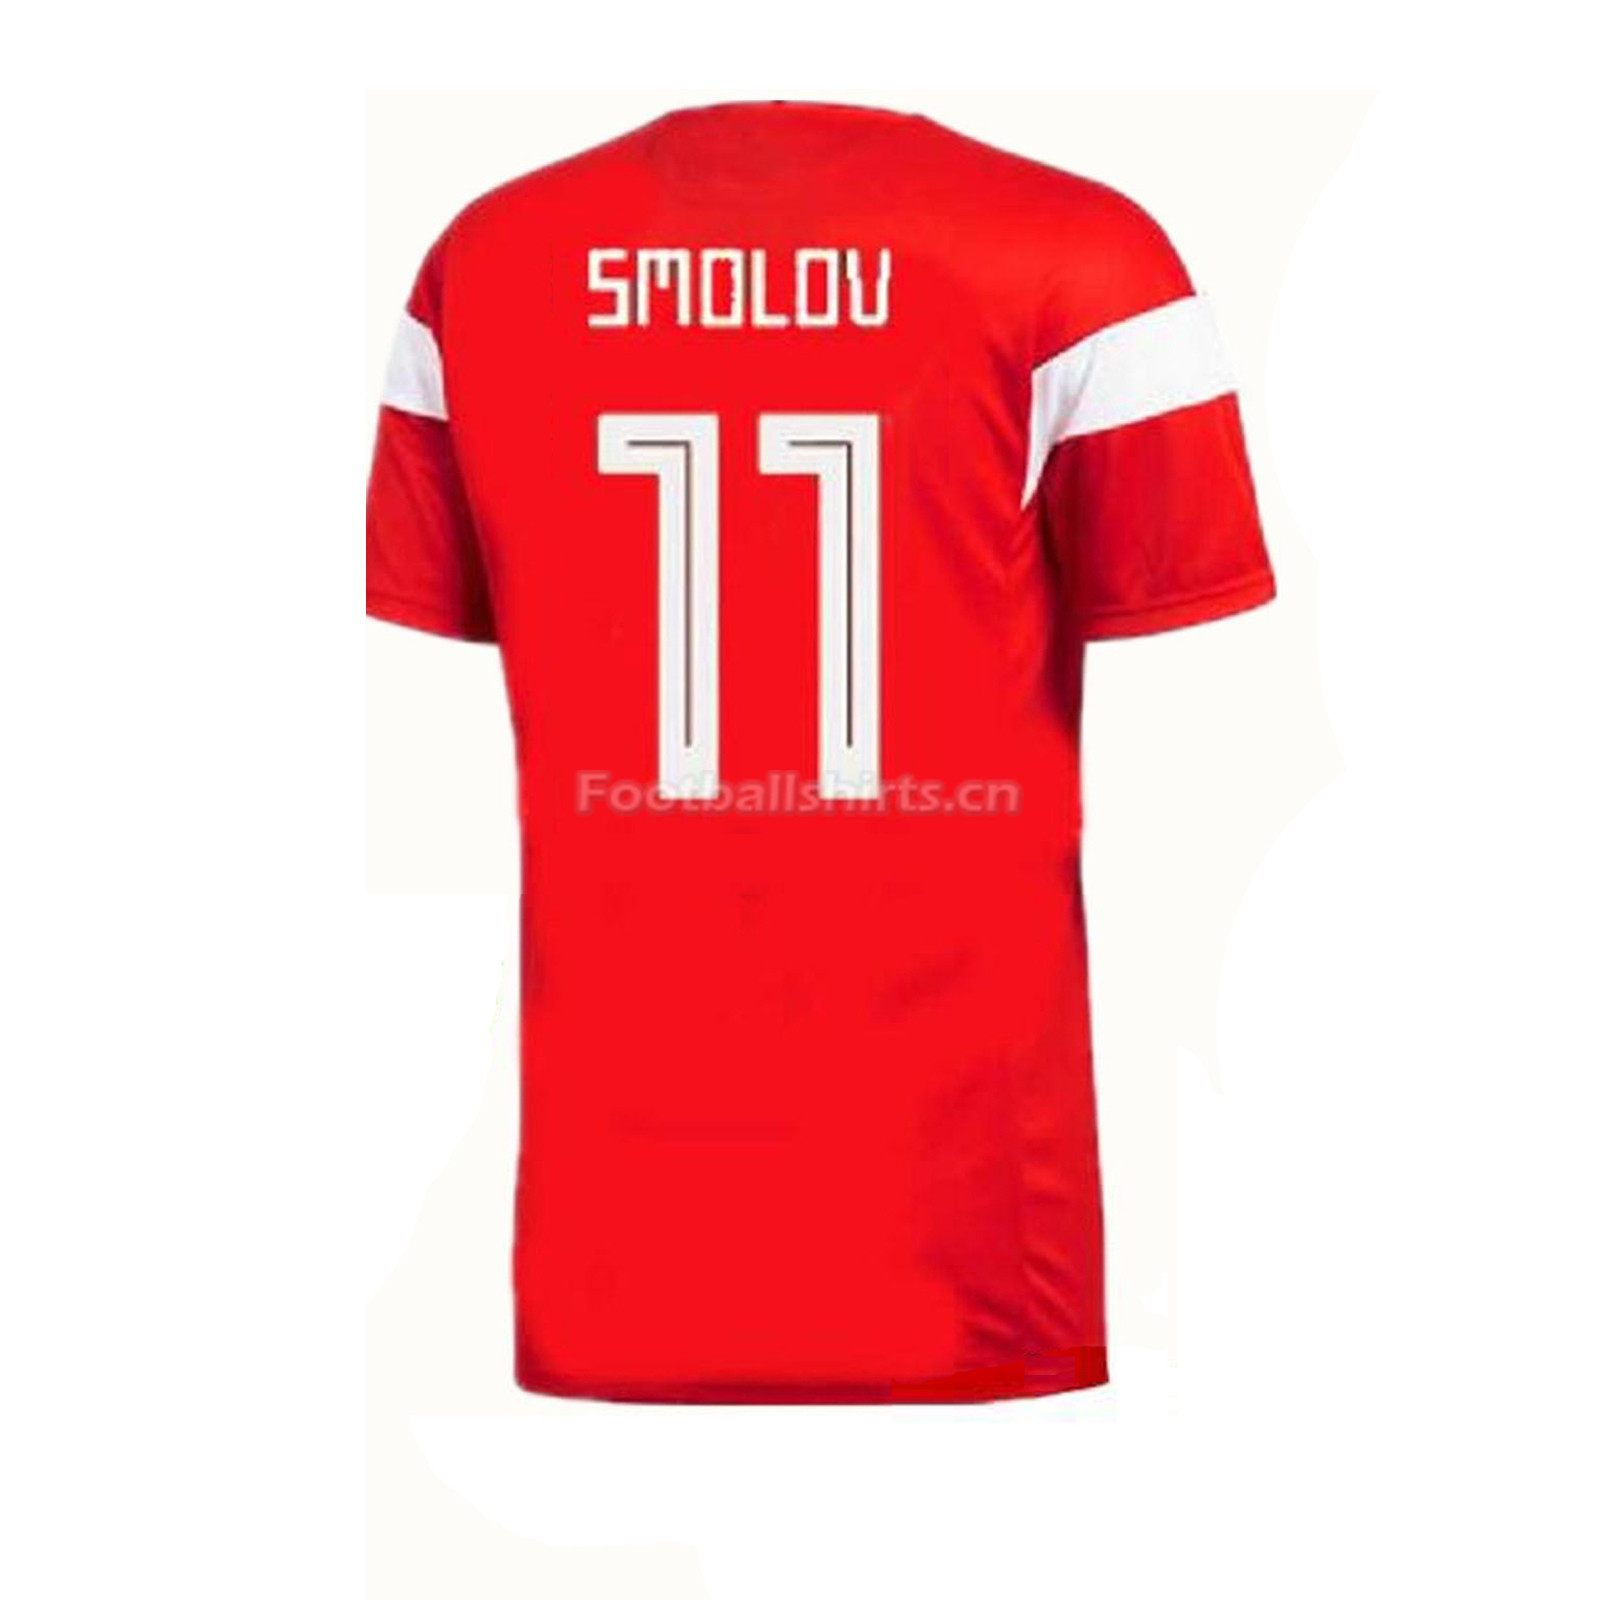 Russia 2018 World Cup Home Fyodor Smolov Soccer Jersey